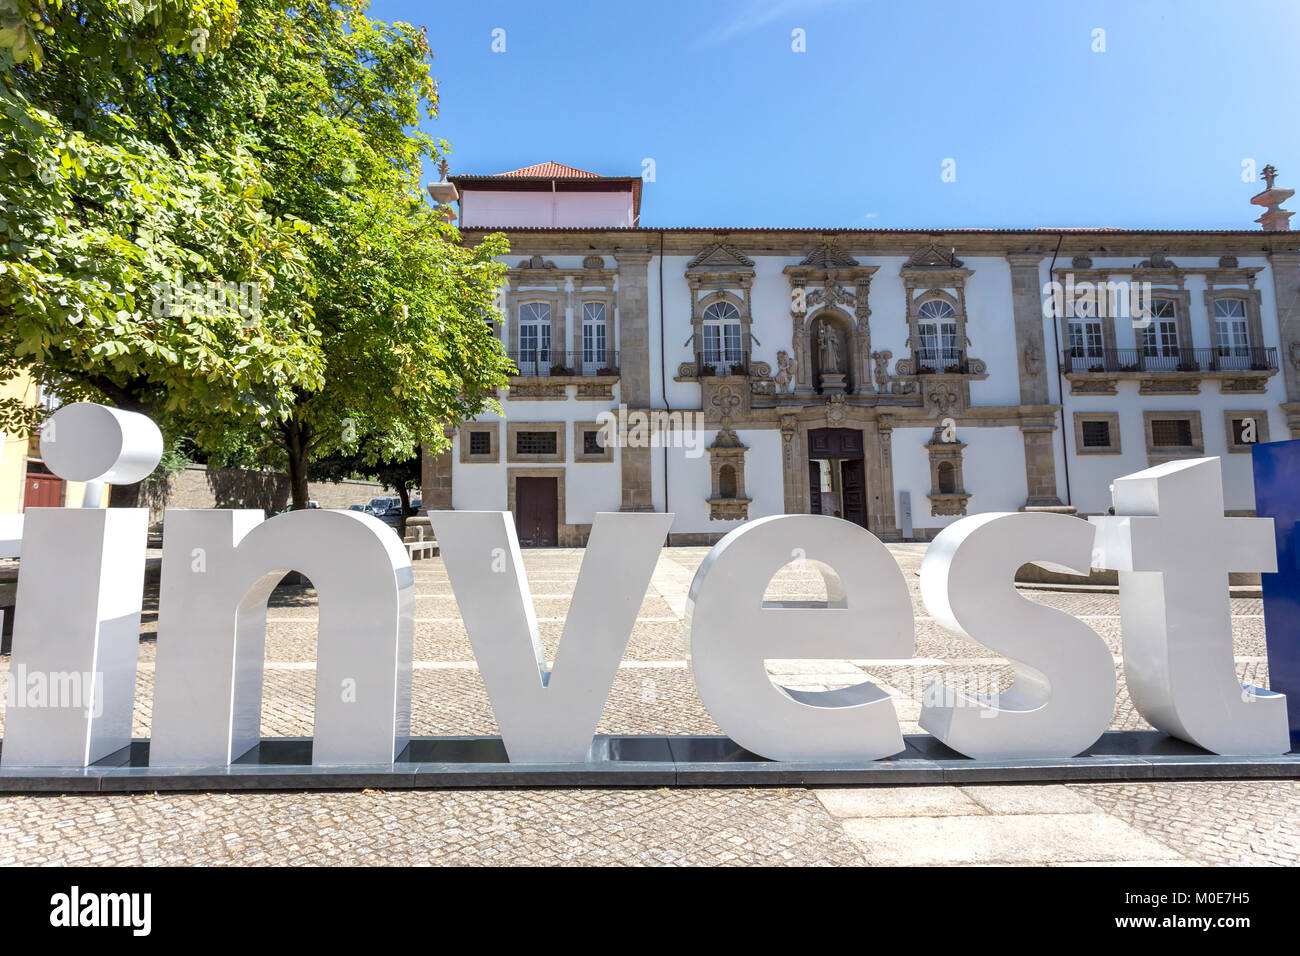 Word Invest created by big plastic letters in front of traditional architecture - Stock Image